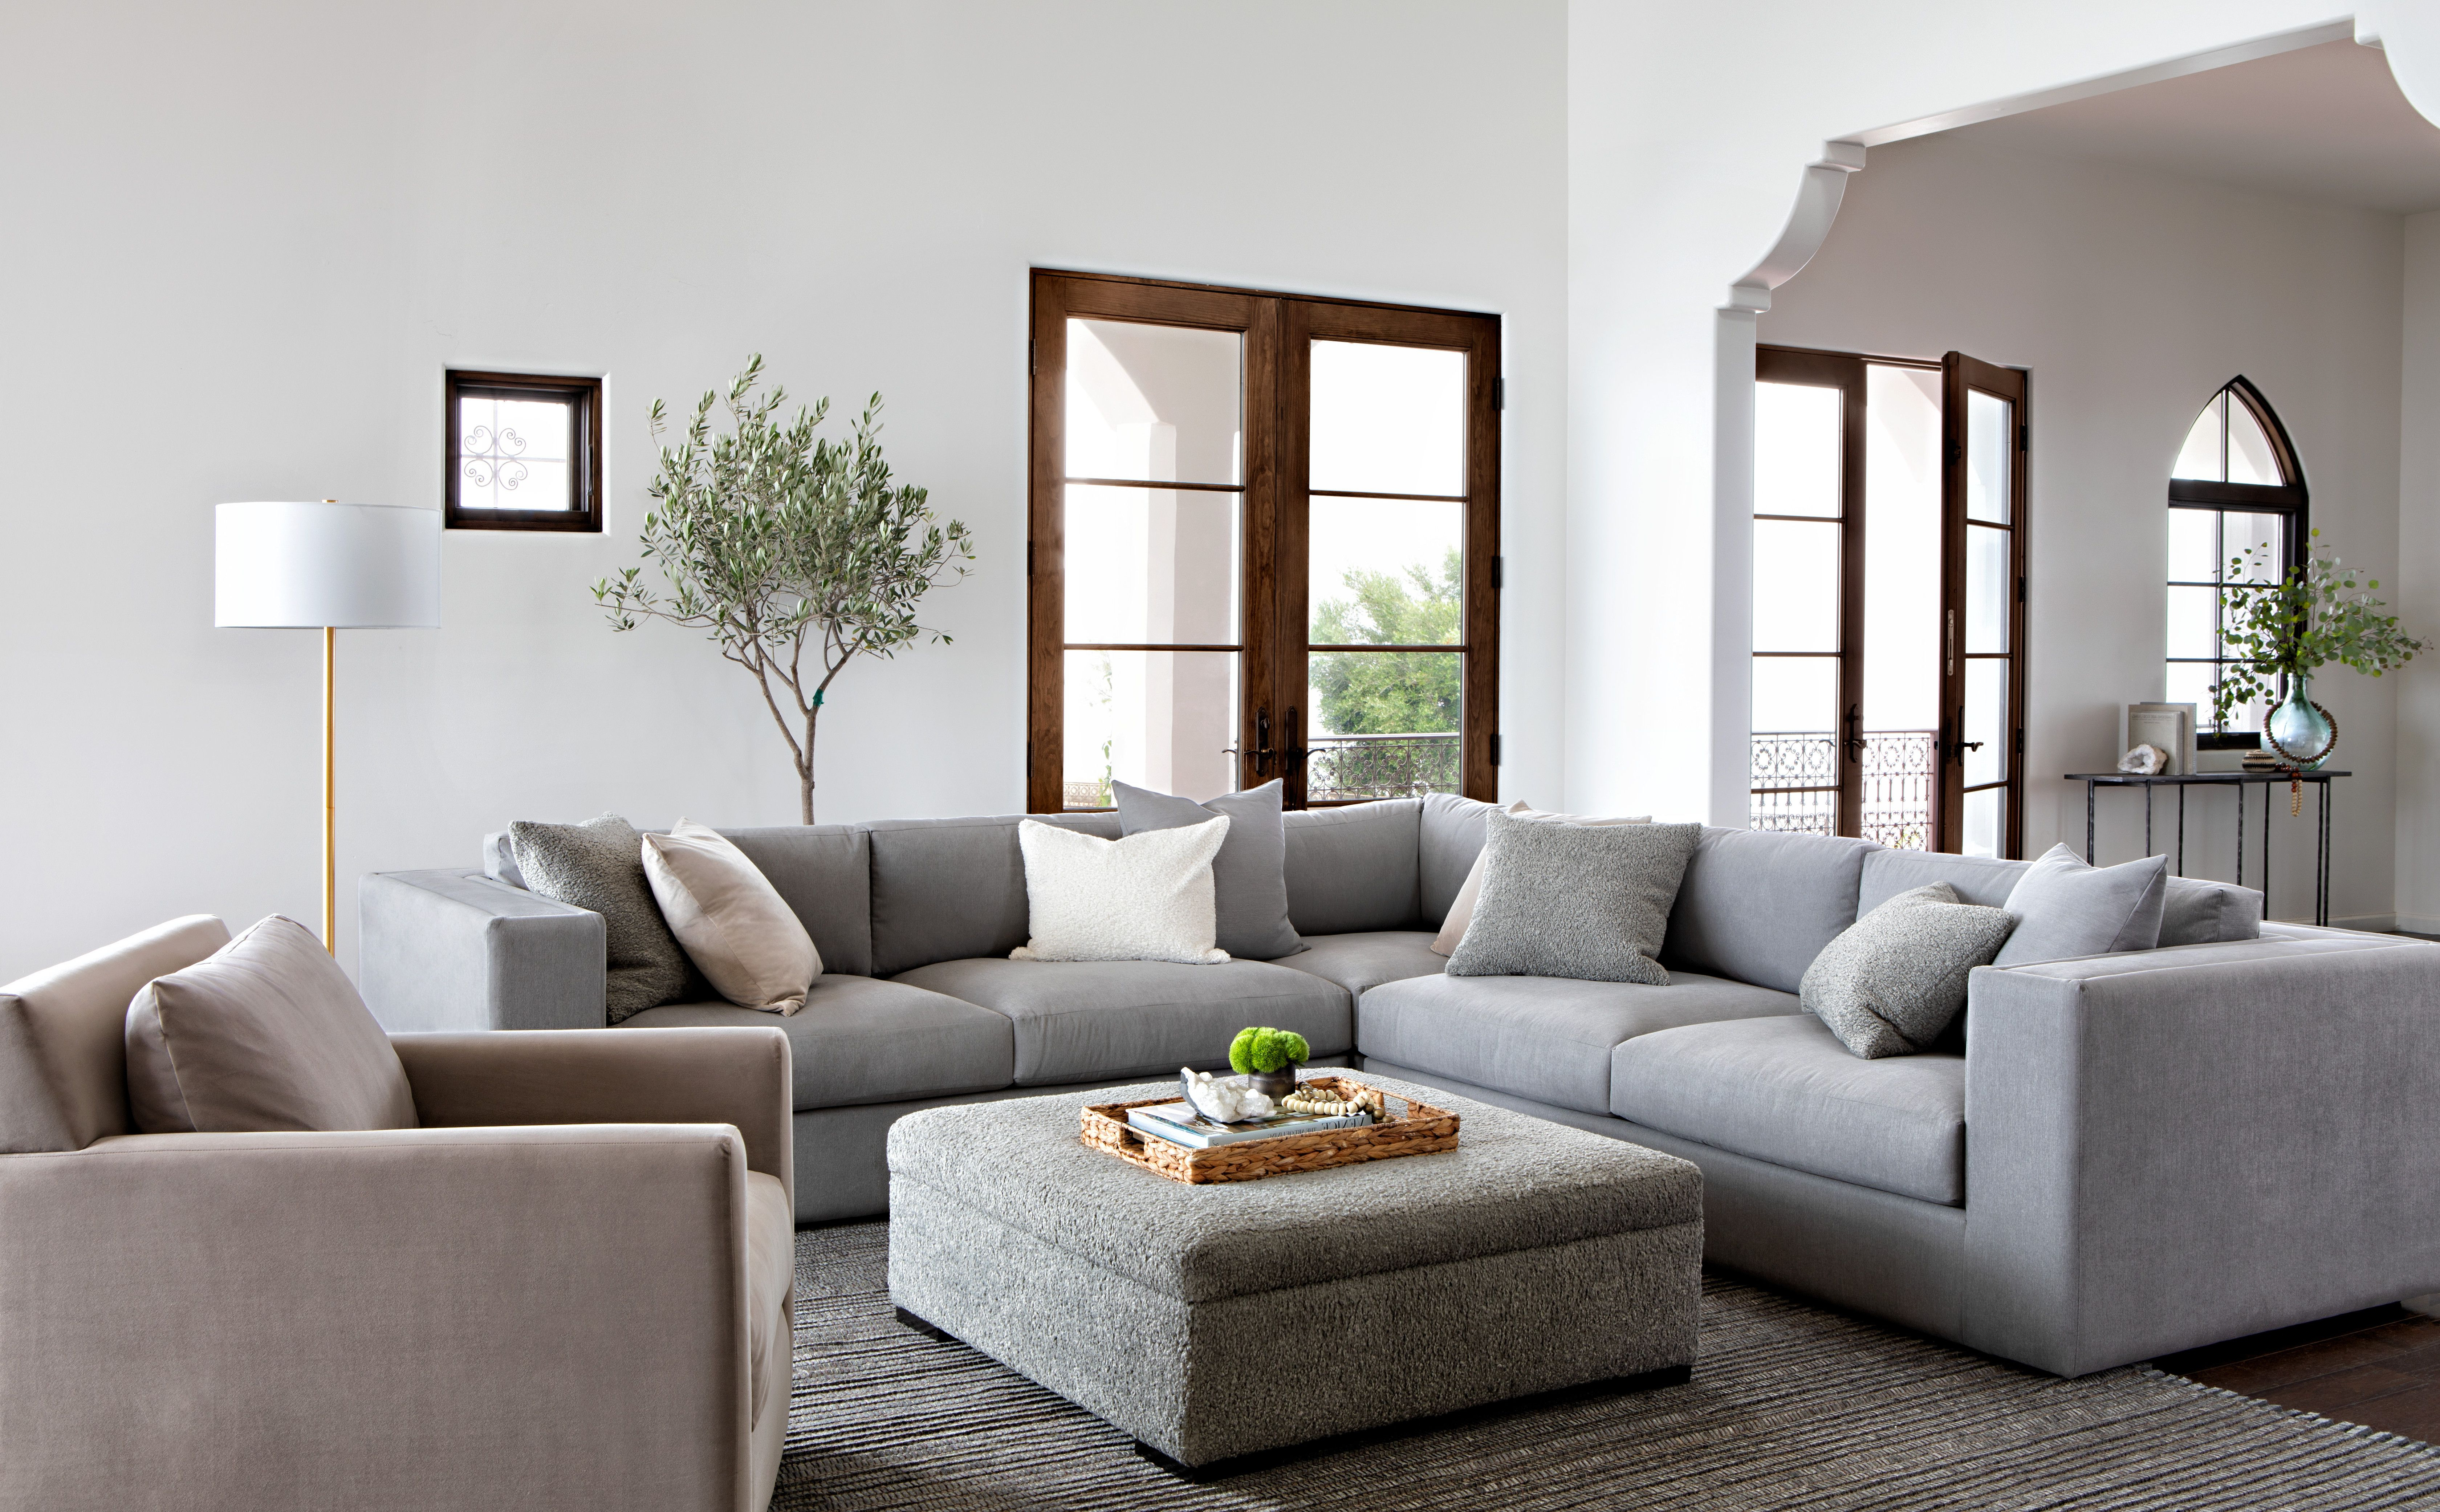 Nate + With Regard To Well Known Liv Arm Sofa Chairs By Nate Berkus And Jeremiah Brent (View 16 of 20)